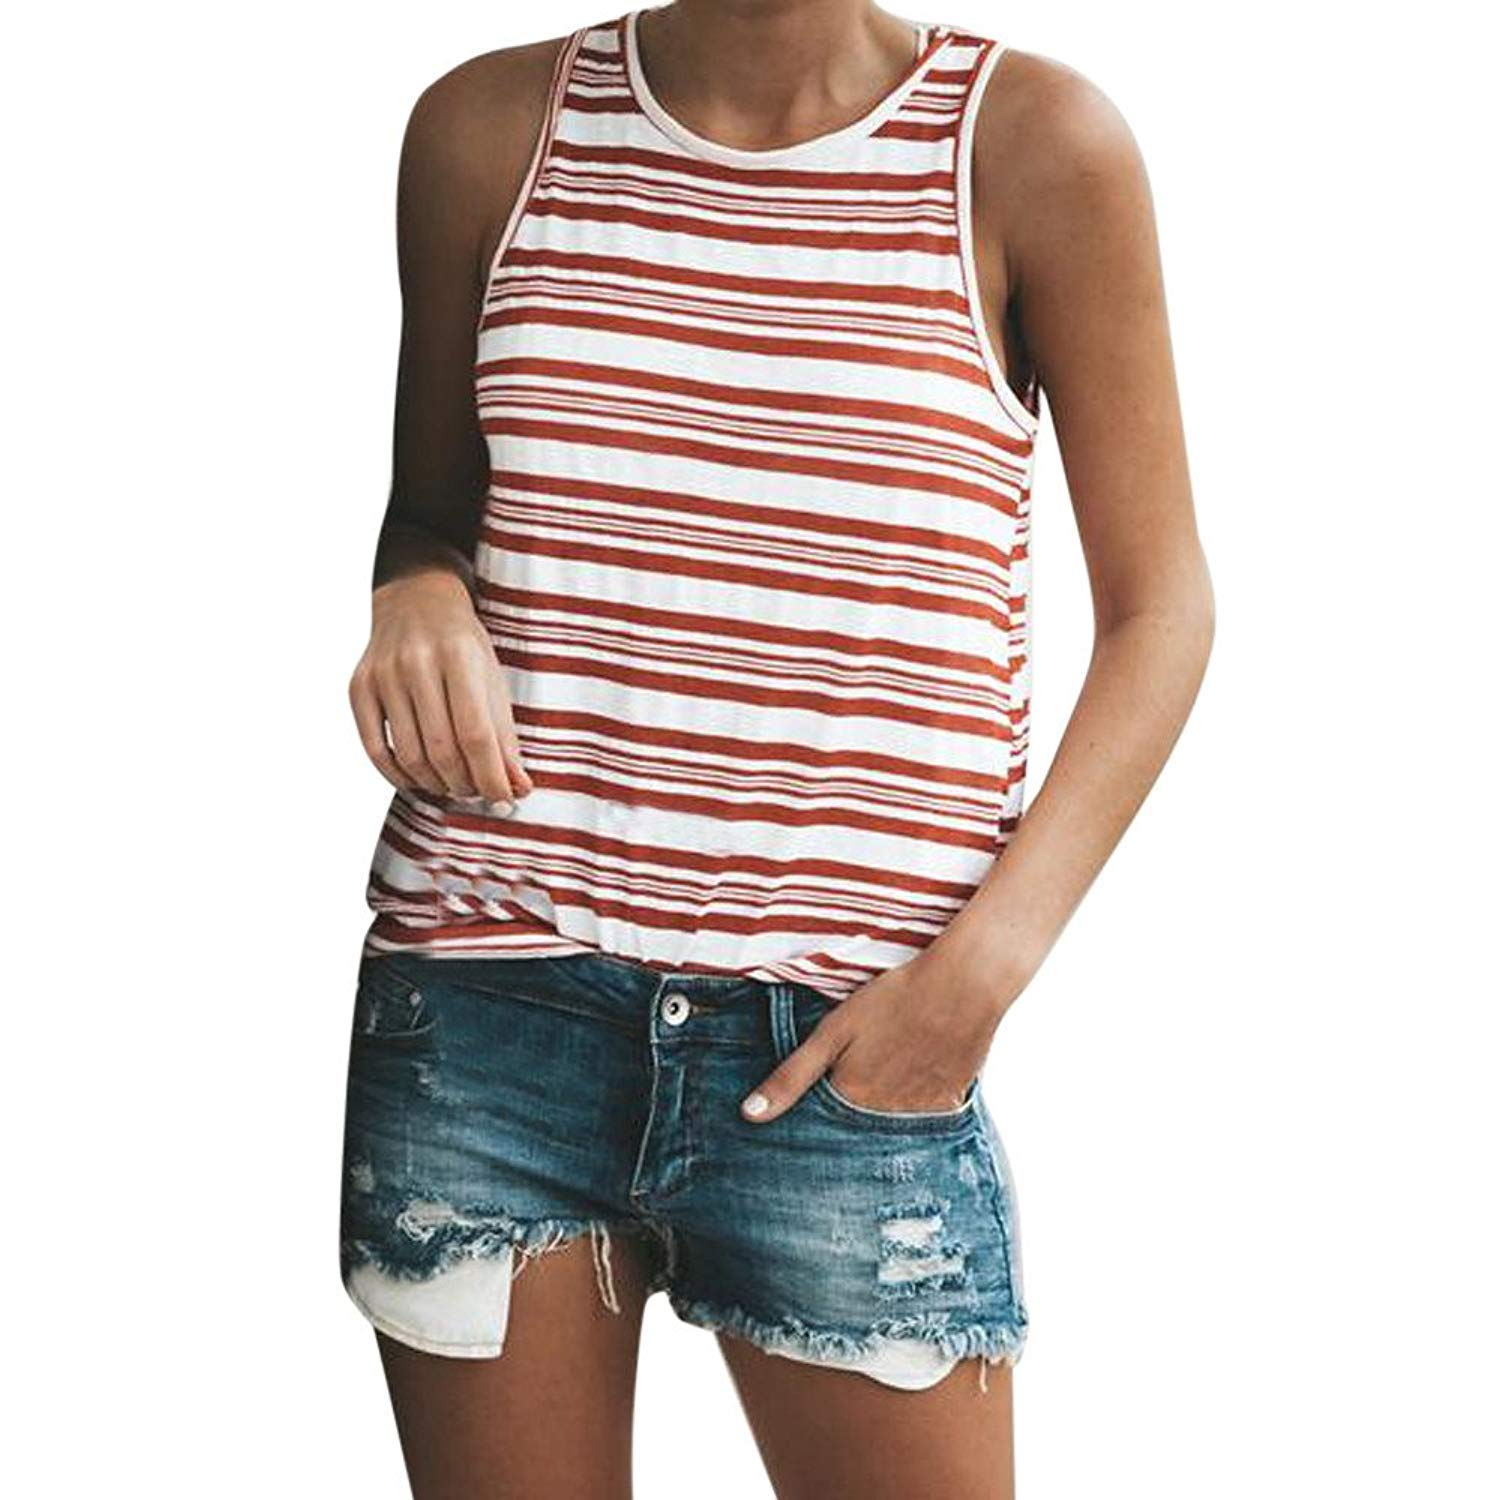 Jinjin Womens Blouse, Women Stripe Sleeveless Blouse Casual Tank Loose Tops T-Shirt Summer